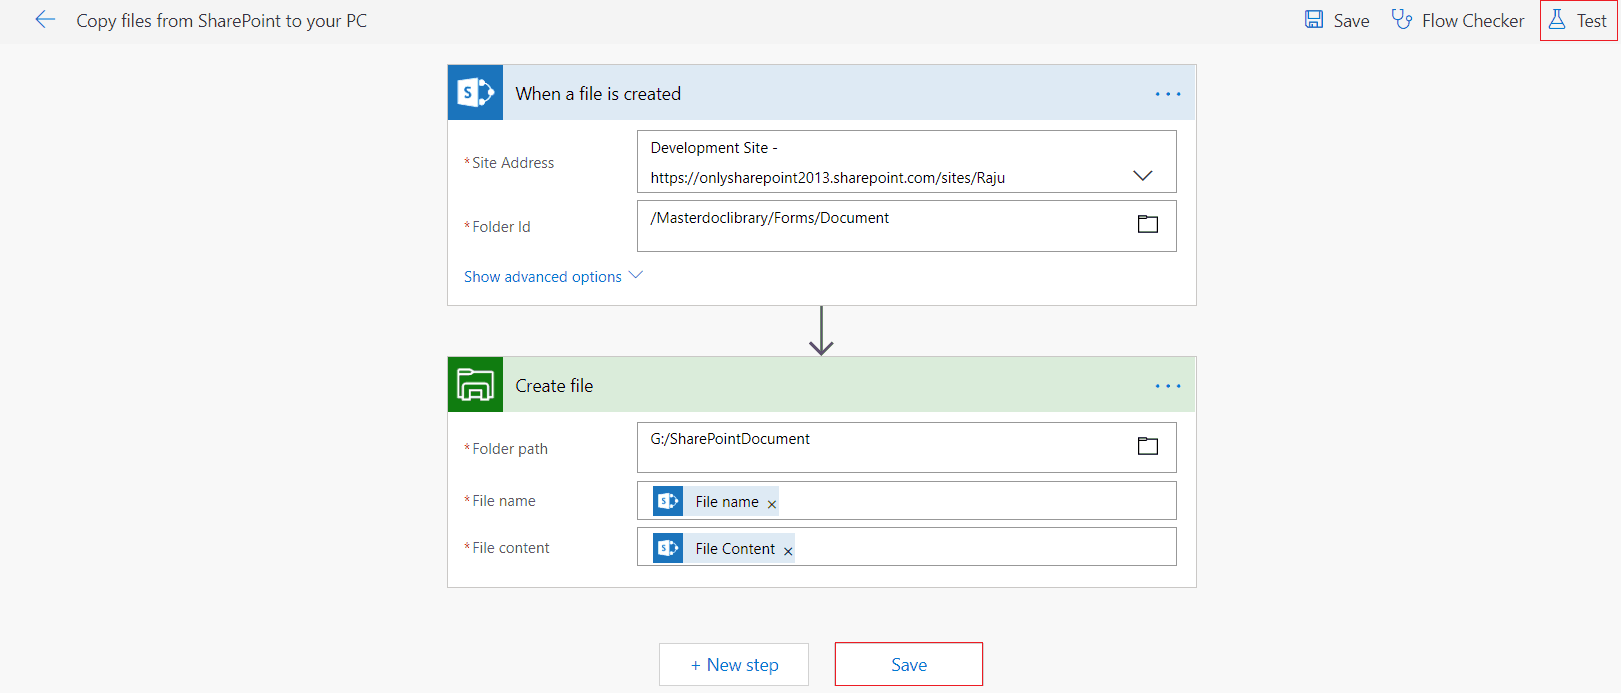 copy files from sharepoint to your pc in flow